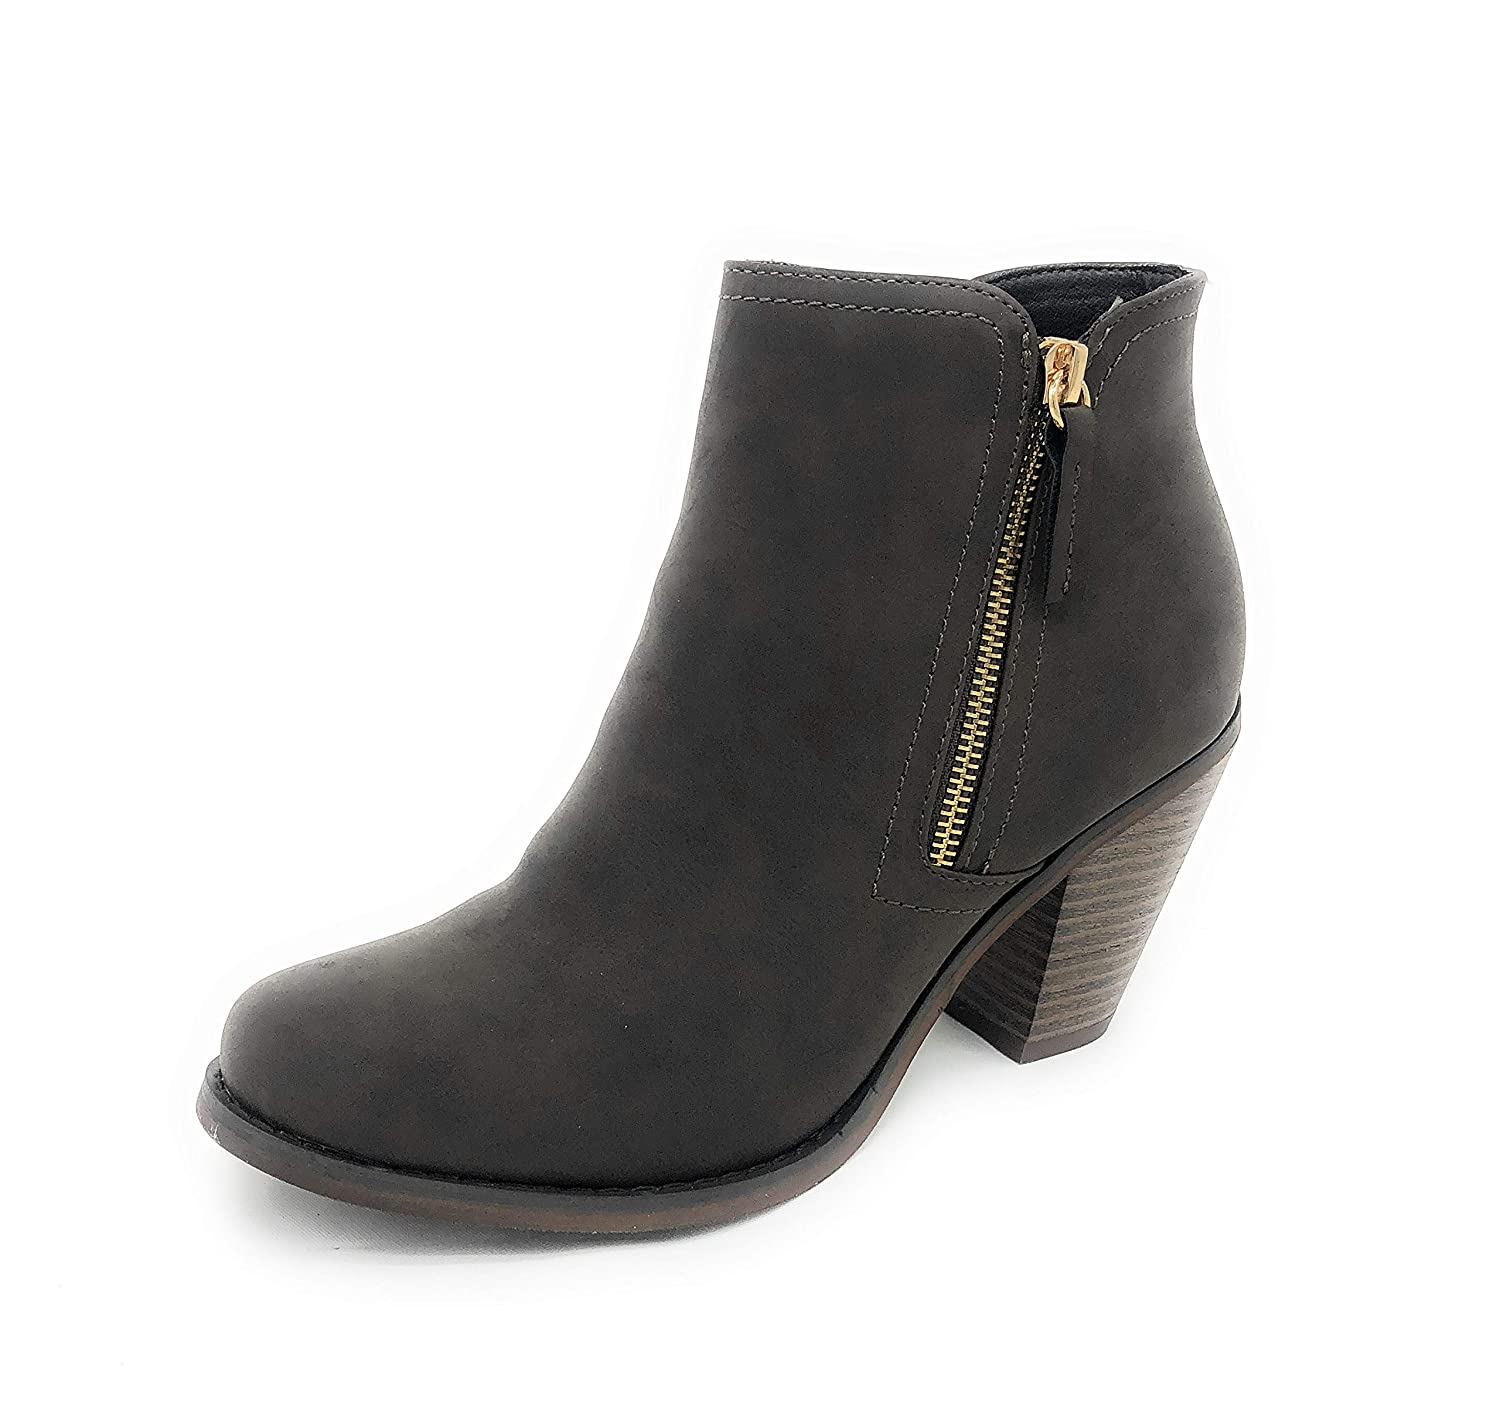 Brown-irene-08 SOLE COLLECTION Faux Leather Suede Strap Side Zipper Chunky Block Heels Dress Ankle Boots